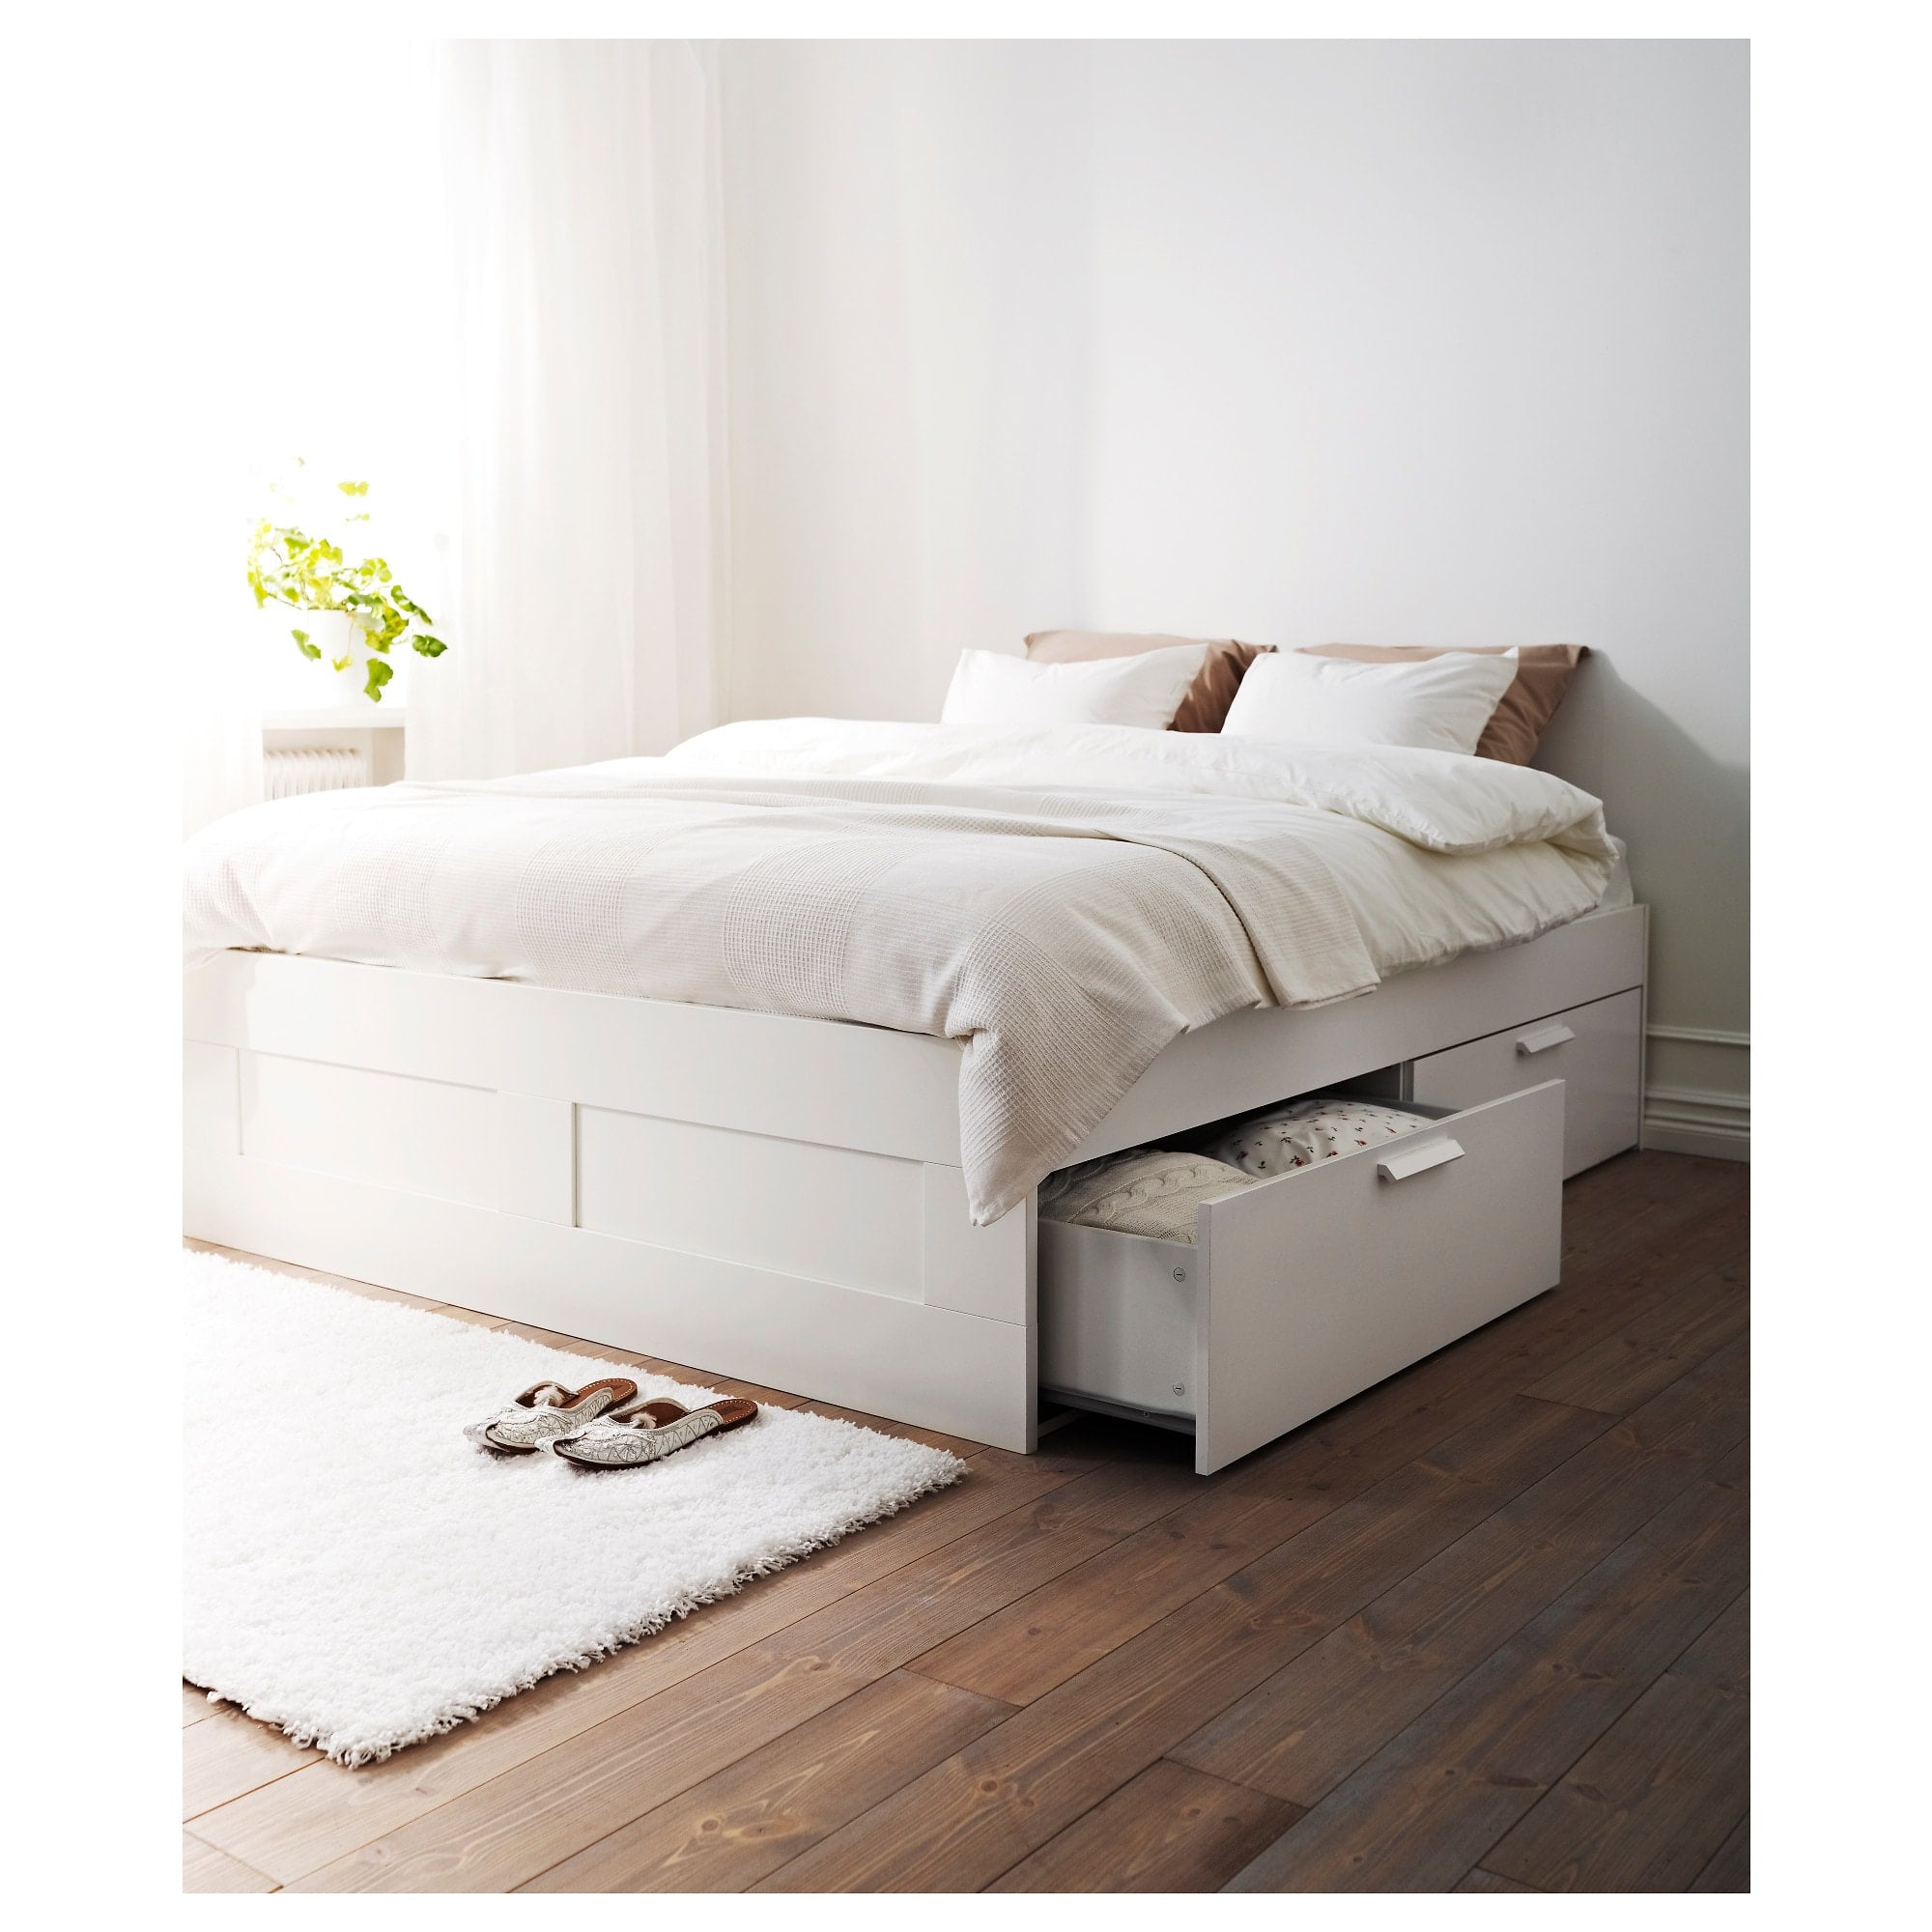 Best Ikea Bedroom Furniture For Small Spaces Popsugar Home